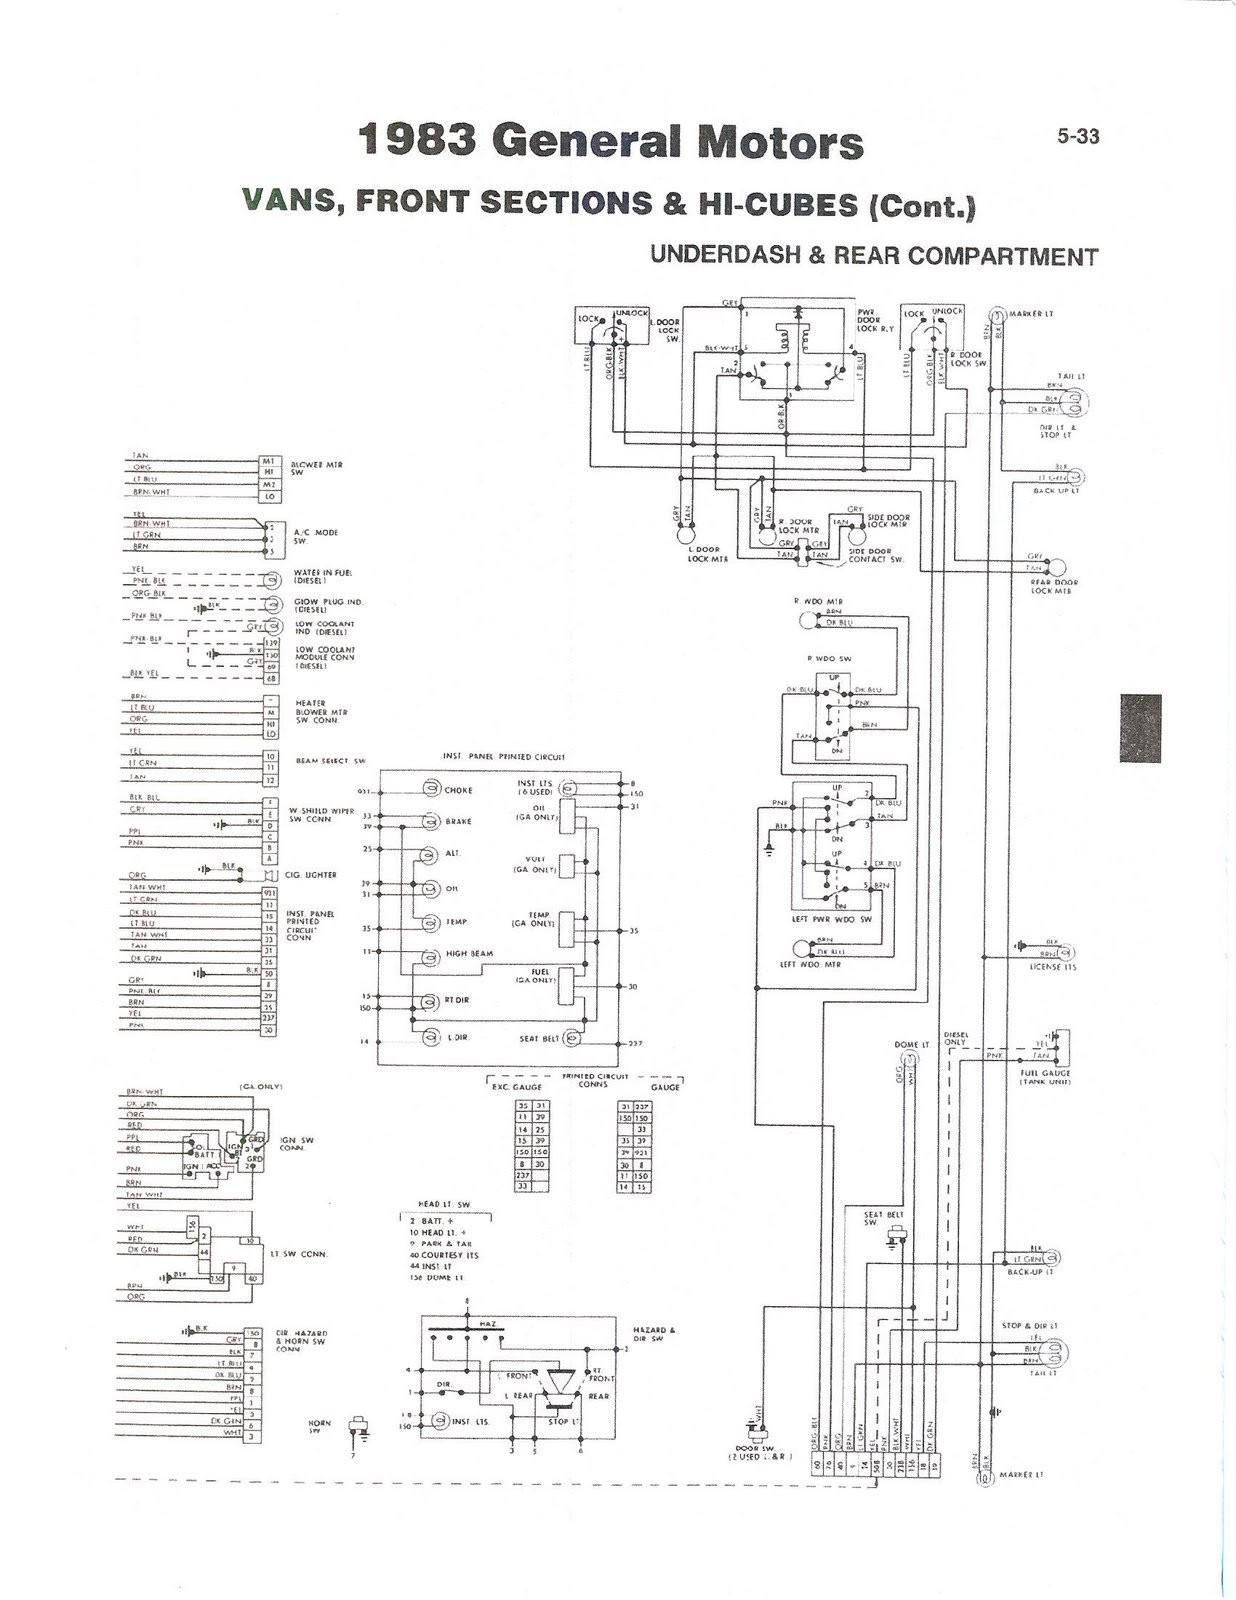 New Magnetek Power Converter 6345 Wiring Diagram